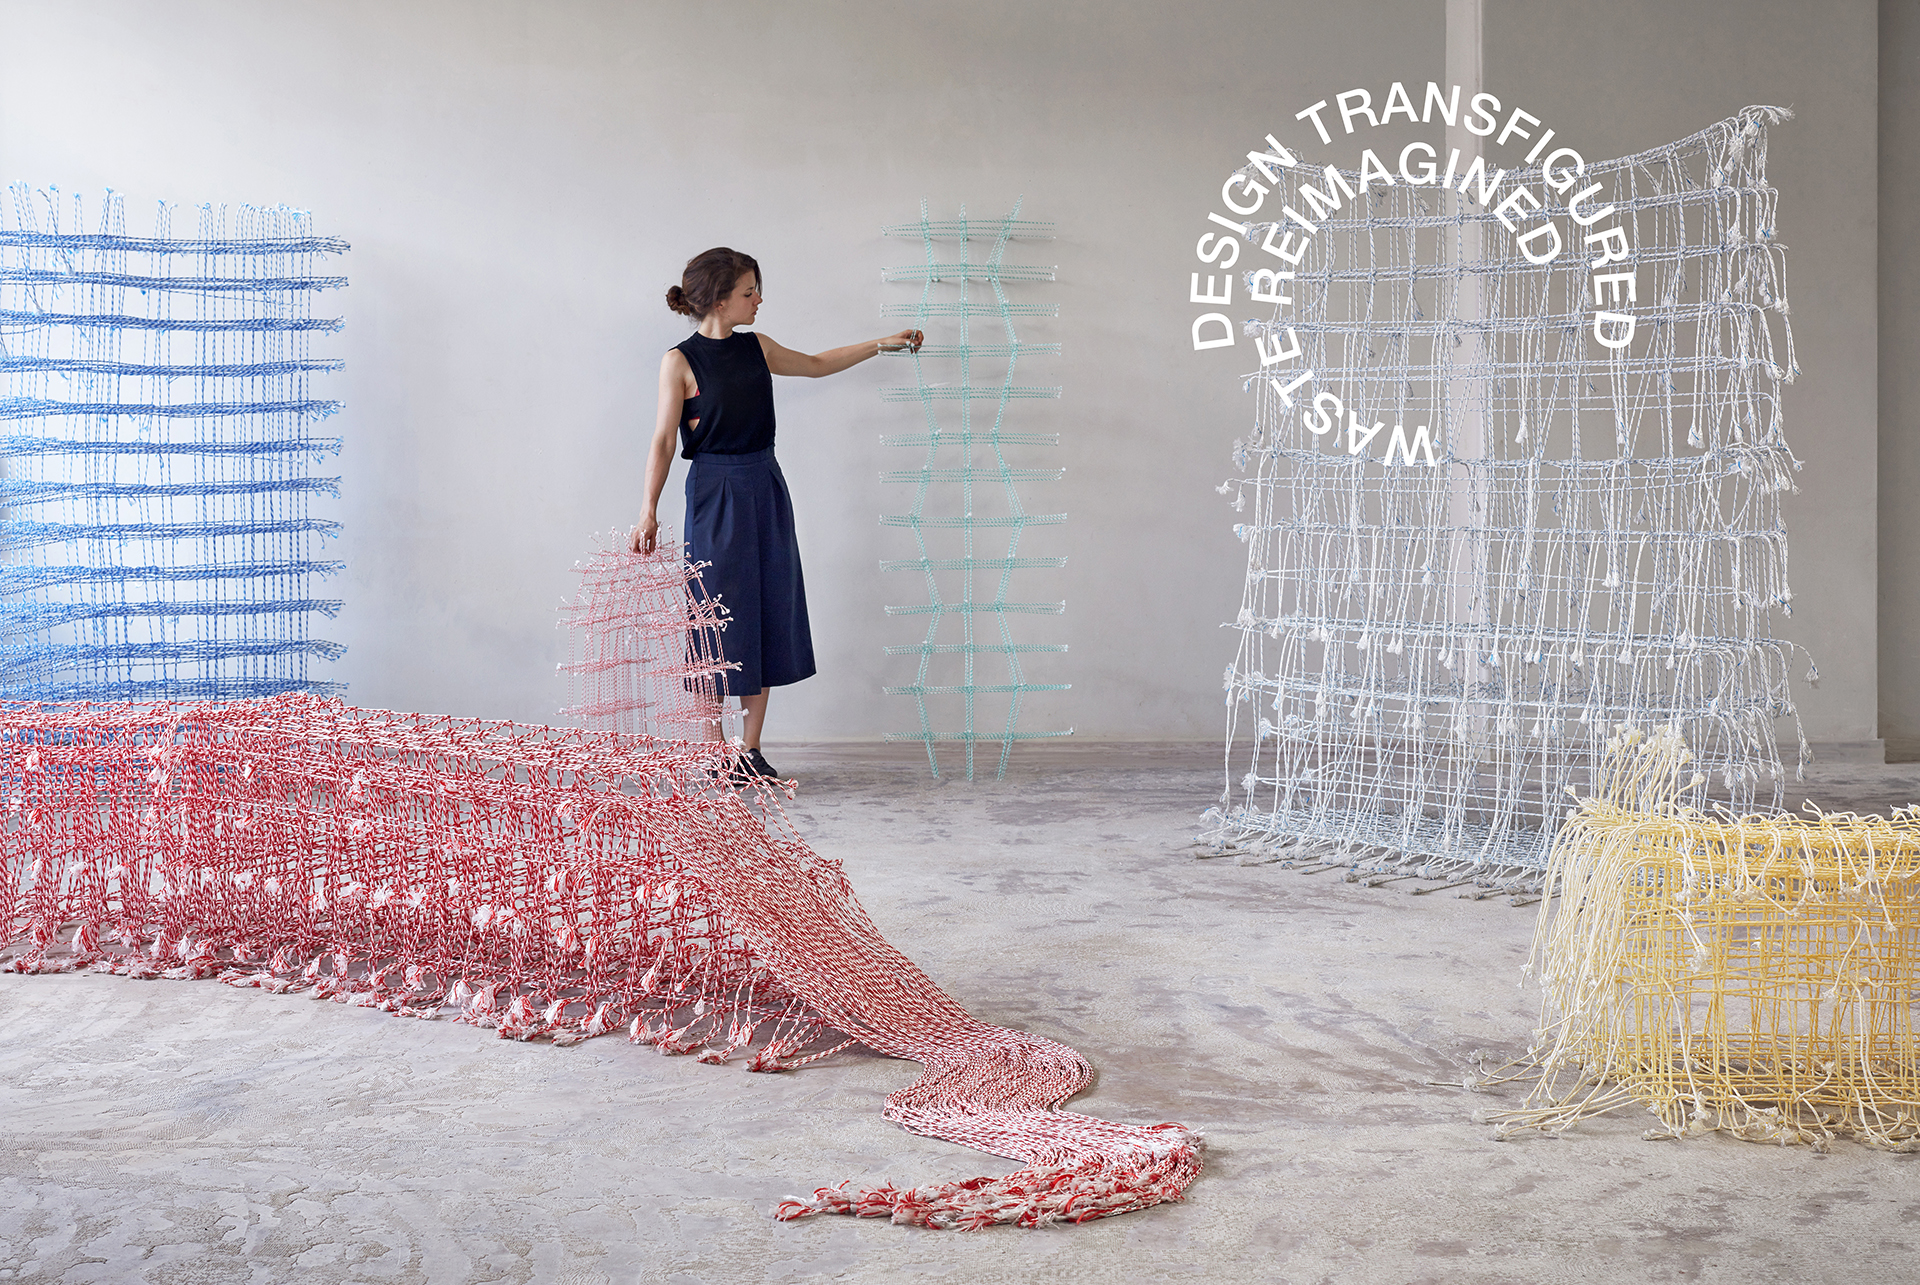 Fransje Gimbrere Design Transfigured / Waste Reimagined exhibit